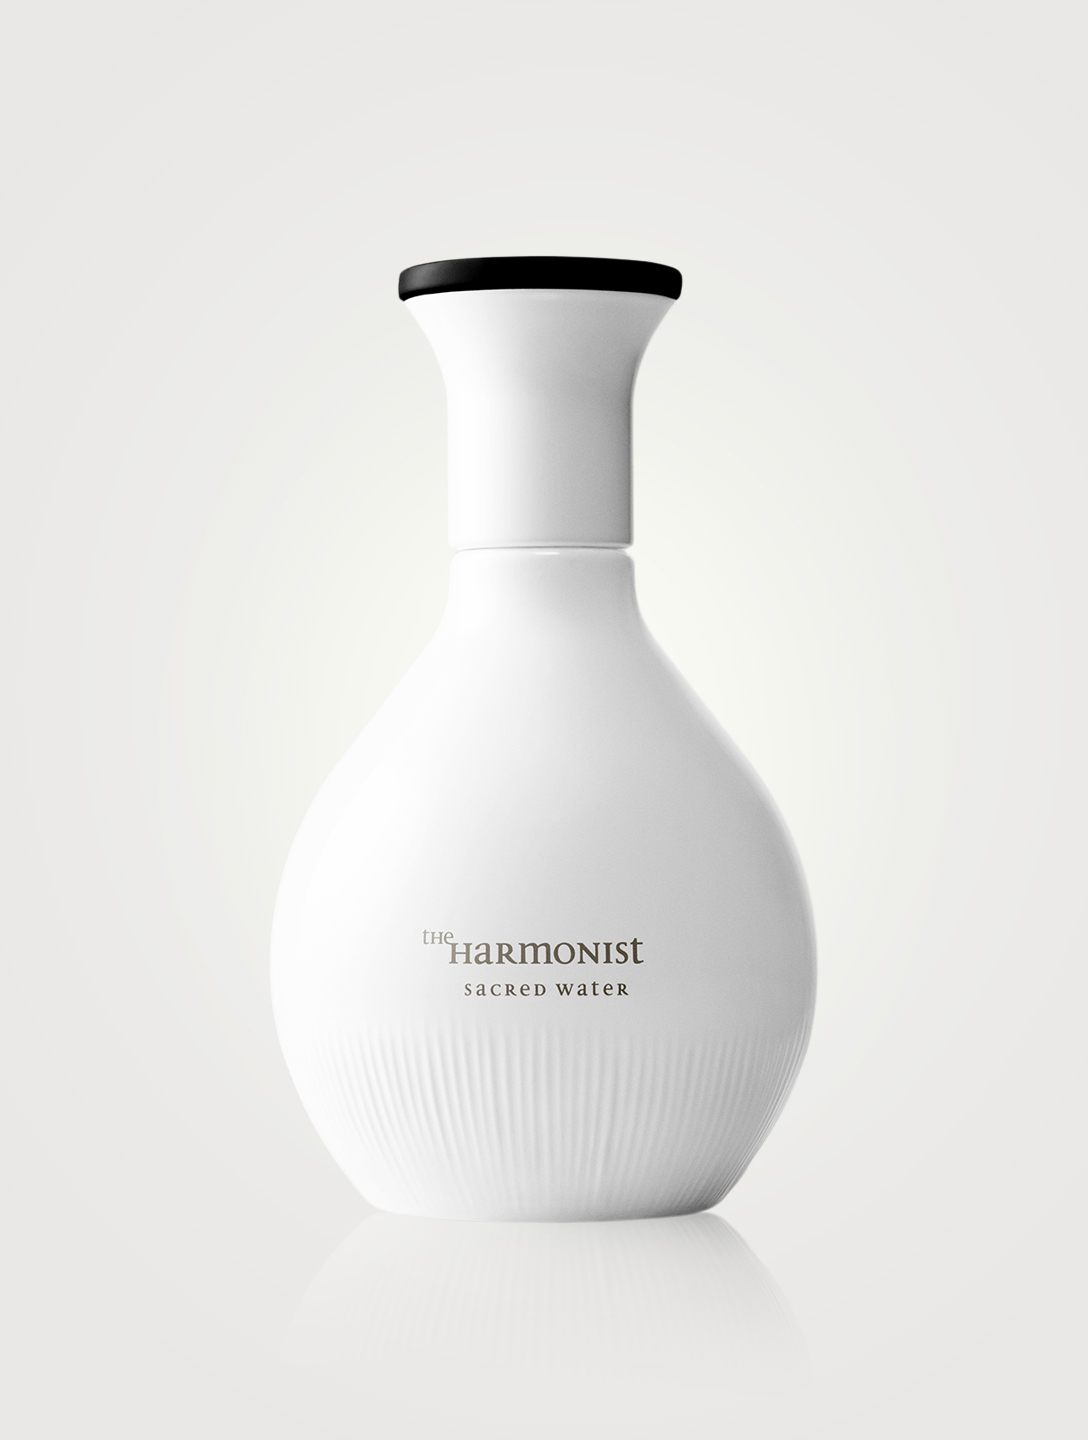 THE HARMONIST Sacred Water Eau De Parfum Beauty